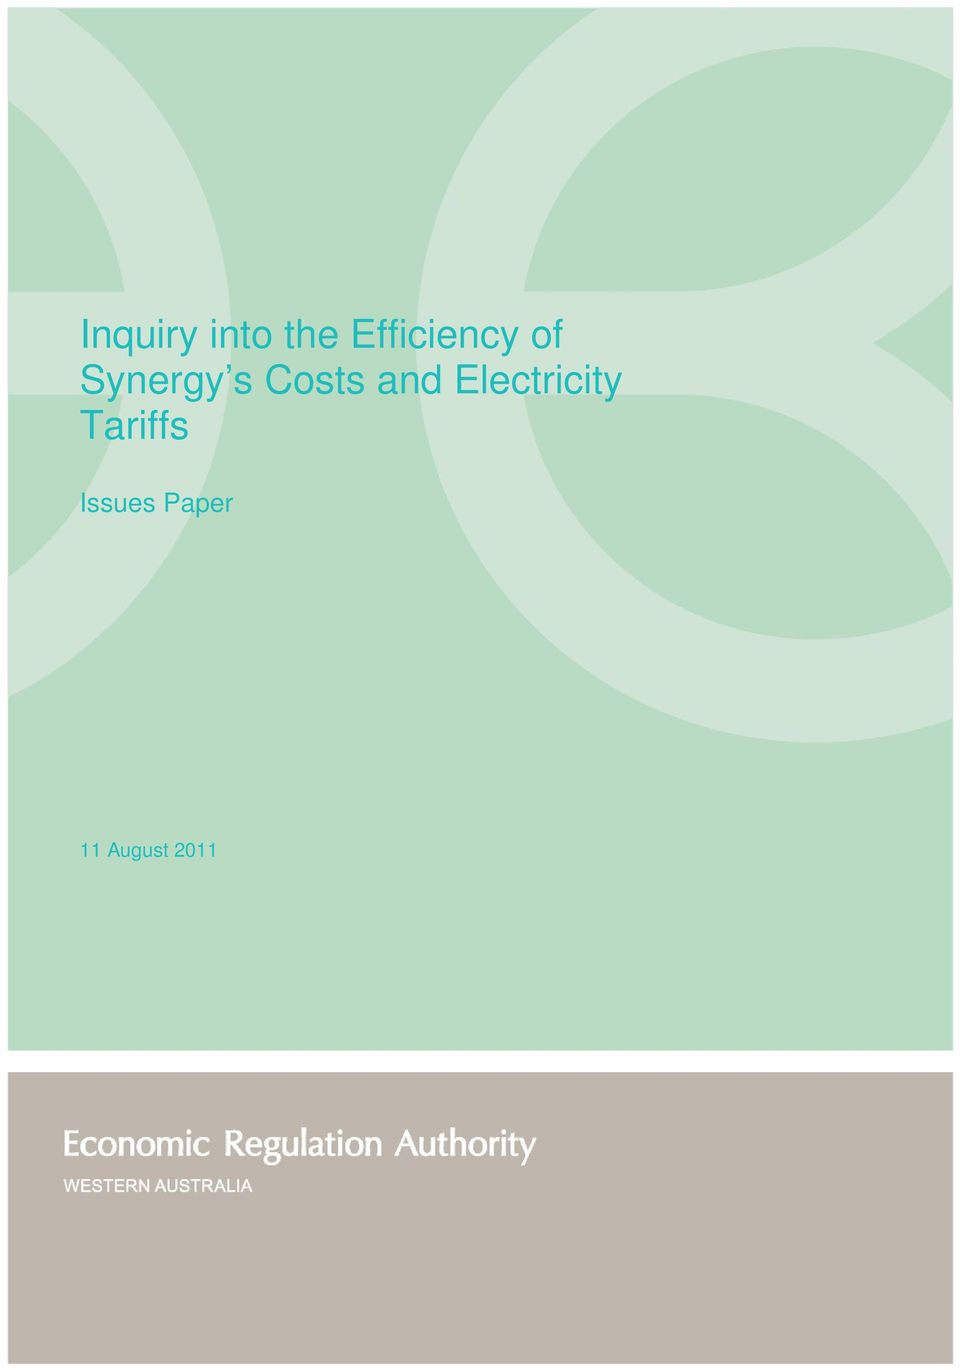 Costs and Electricity